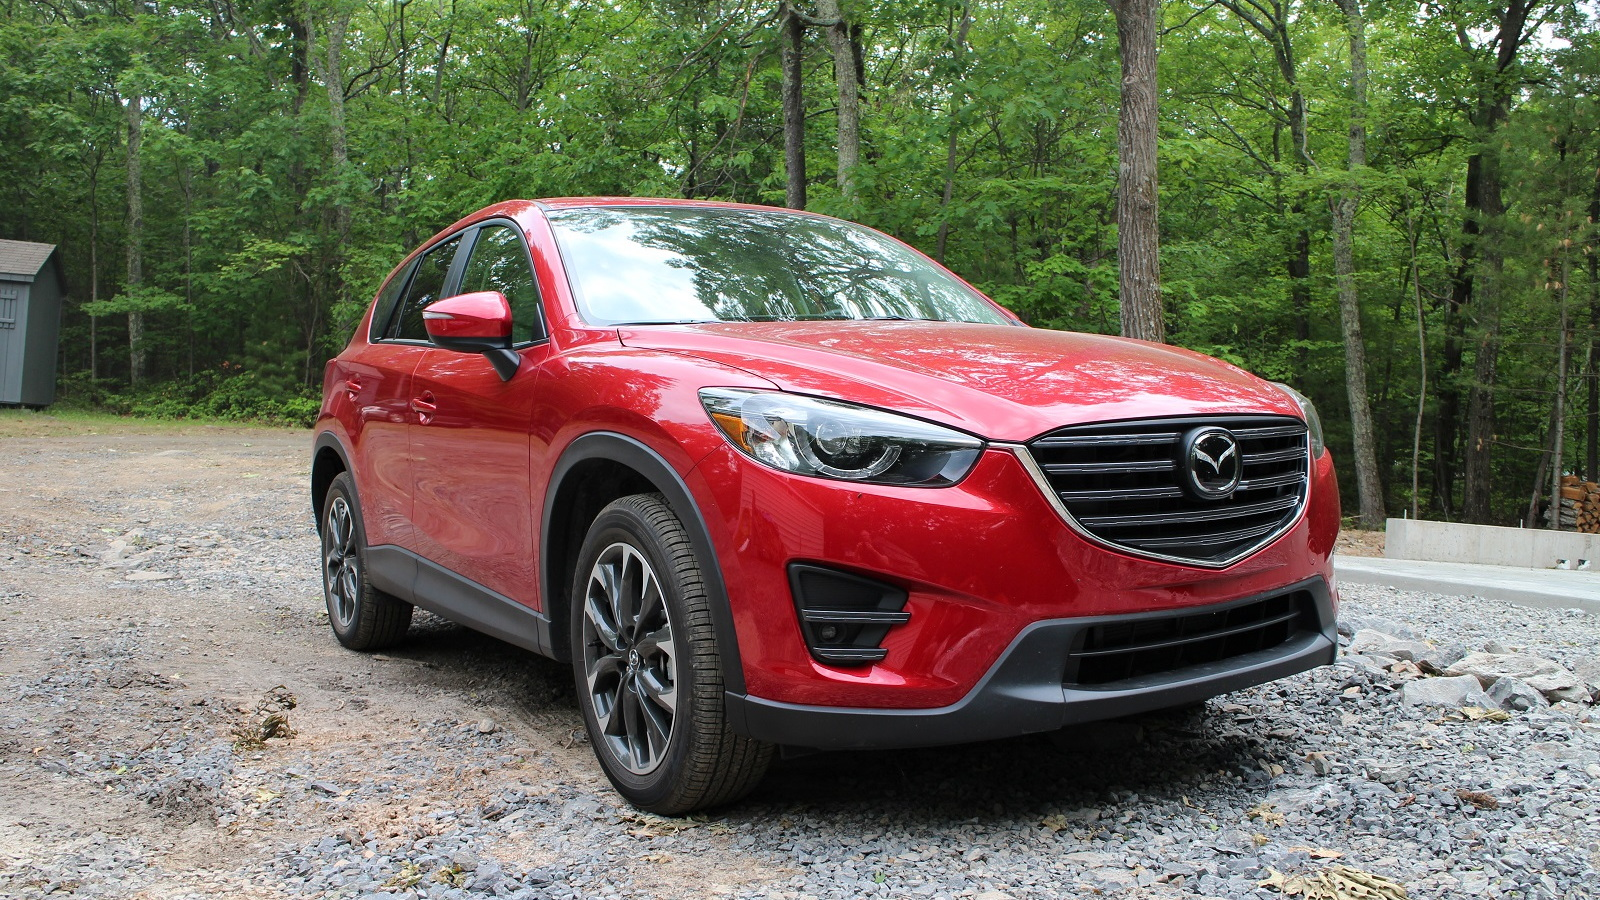 2016 Mazda CX-5 Grand Touring: Gas Mileage Review Of Small SUV